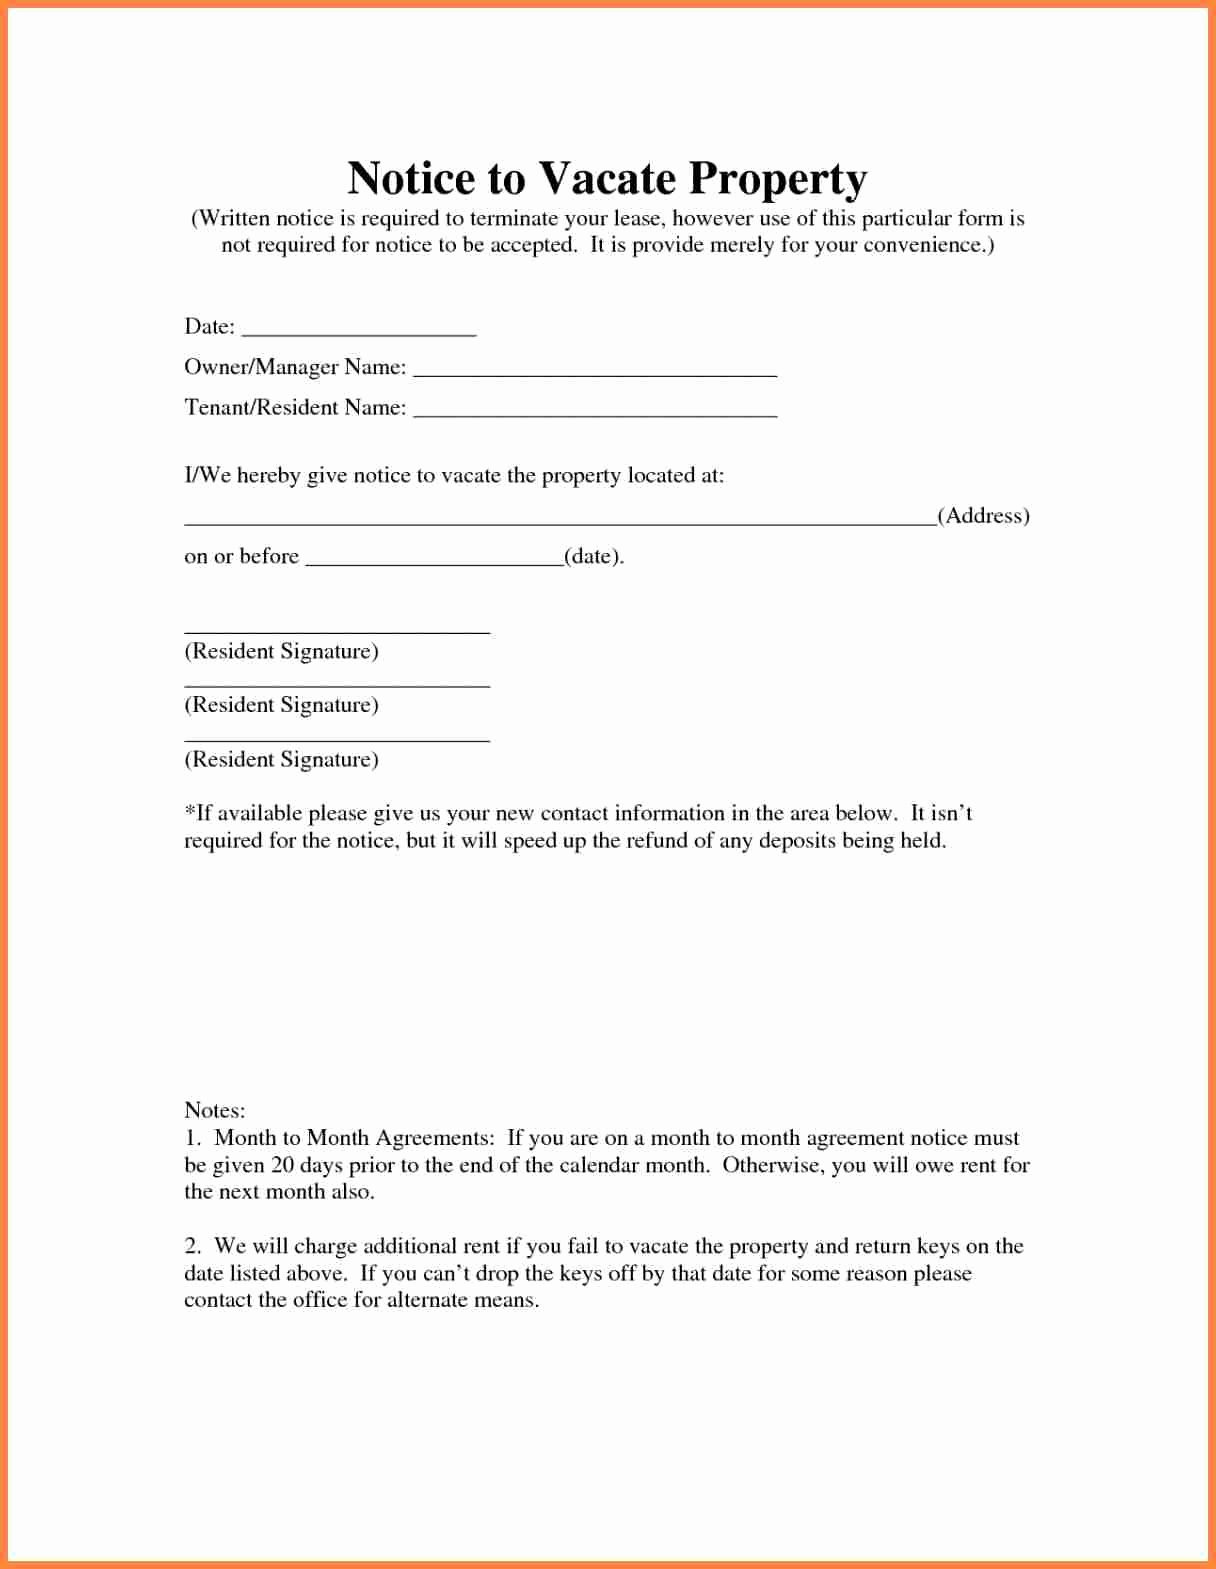 Notice to Vacate Rental Awesome 10 Sample Letter Notice to Vacate Rental Property